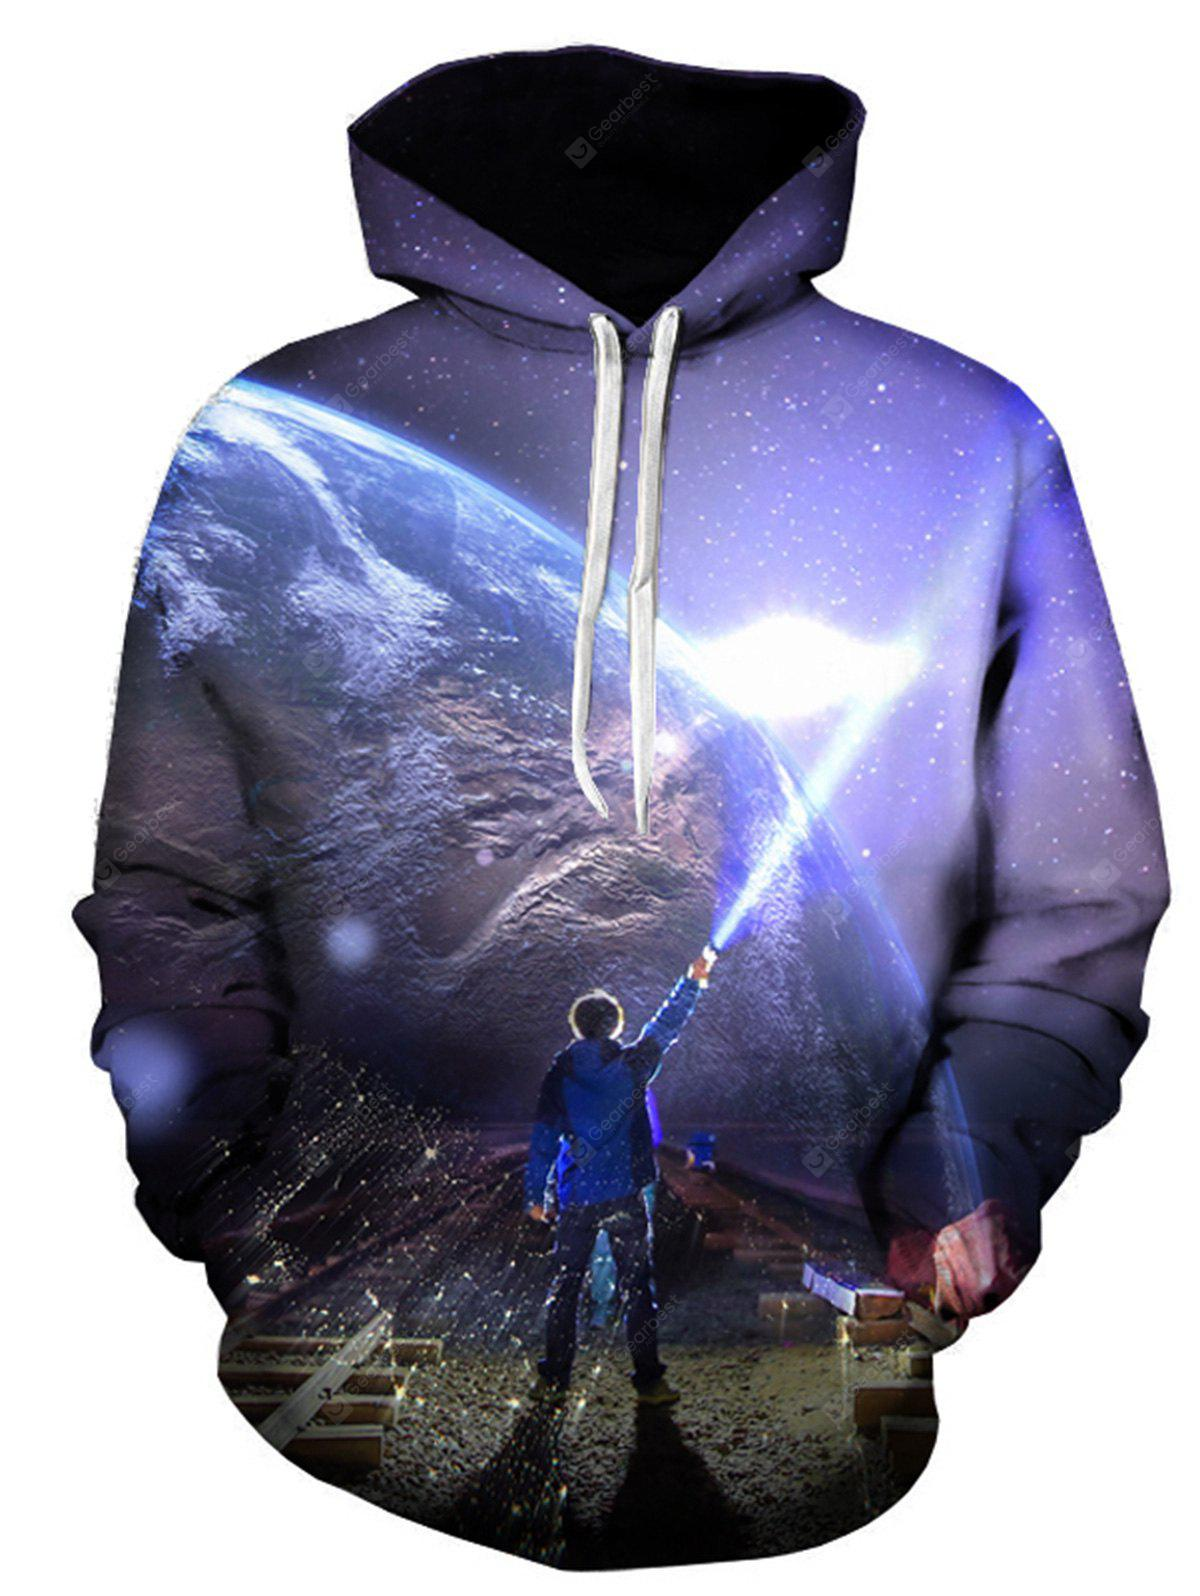 3D Earth Figure Print Pullover Hoodie, COLORMIX, 4XL, Apparel, Men's Clothing, Men's Hoodies & Sweatshirts